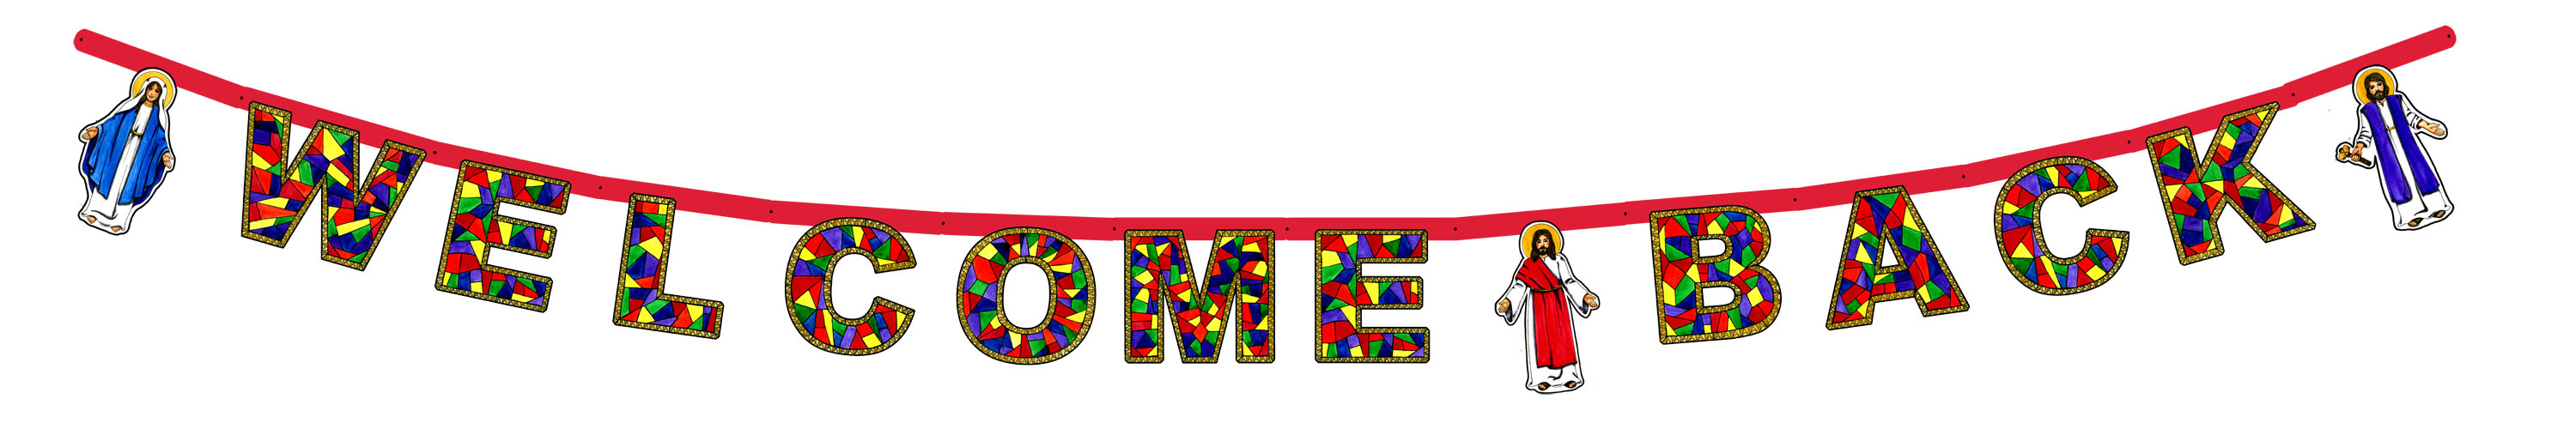 3000x500 76 Free Welcome Clip Art